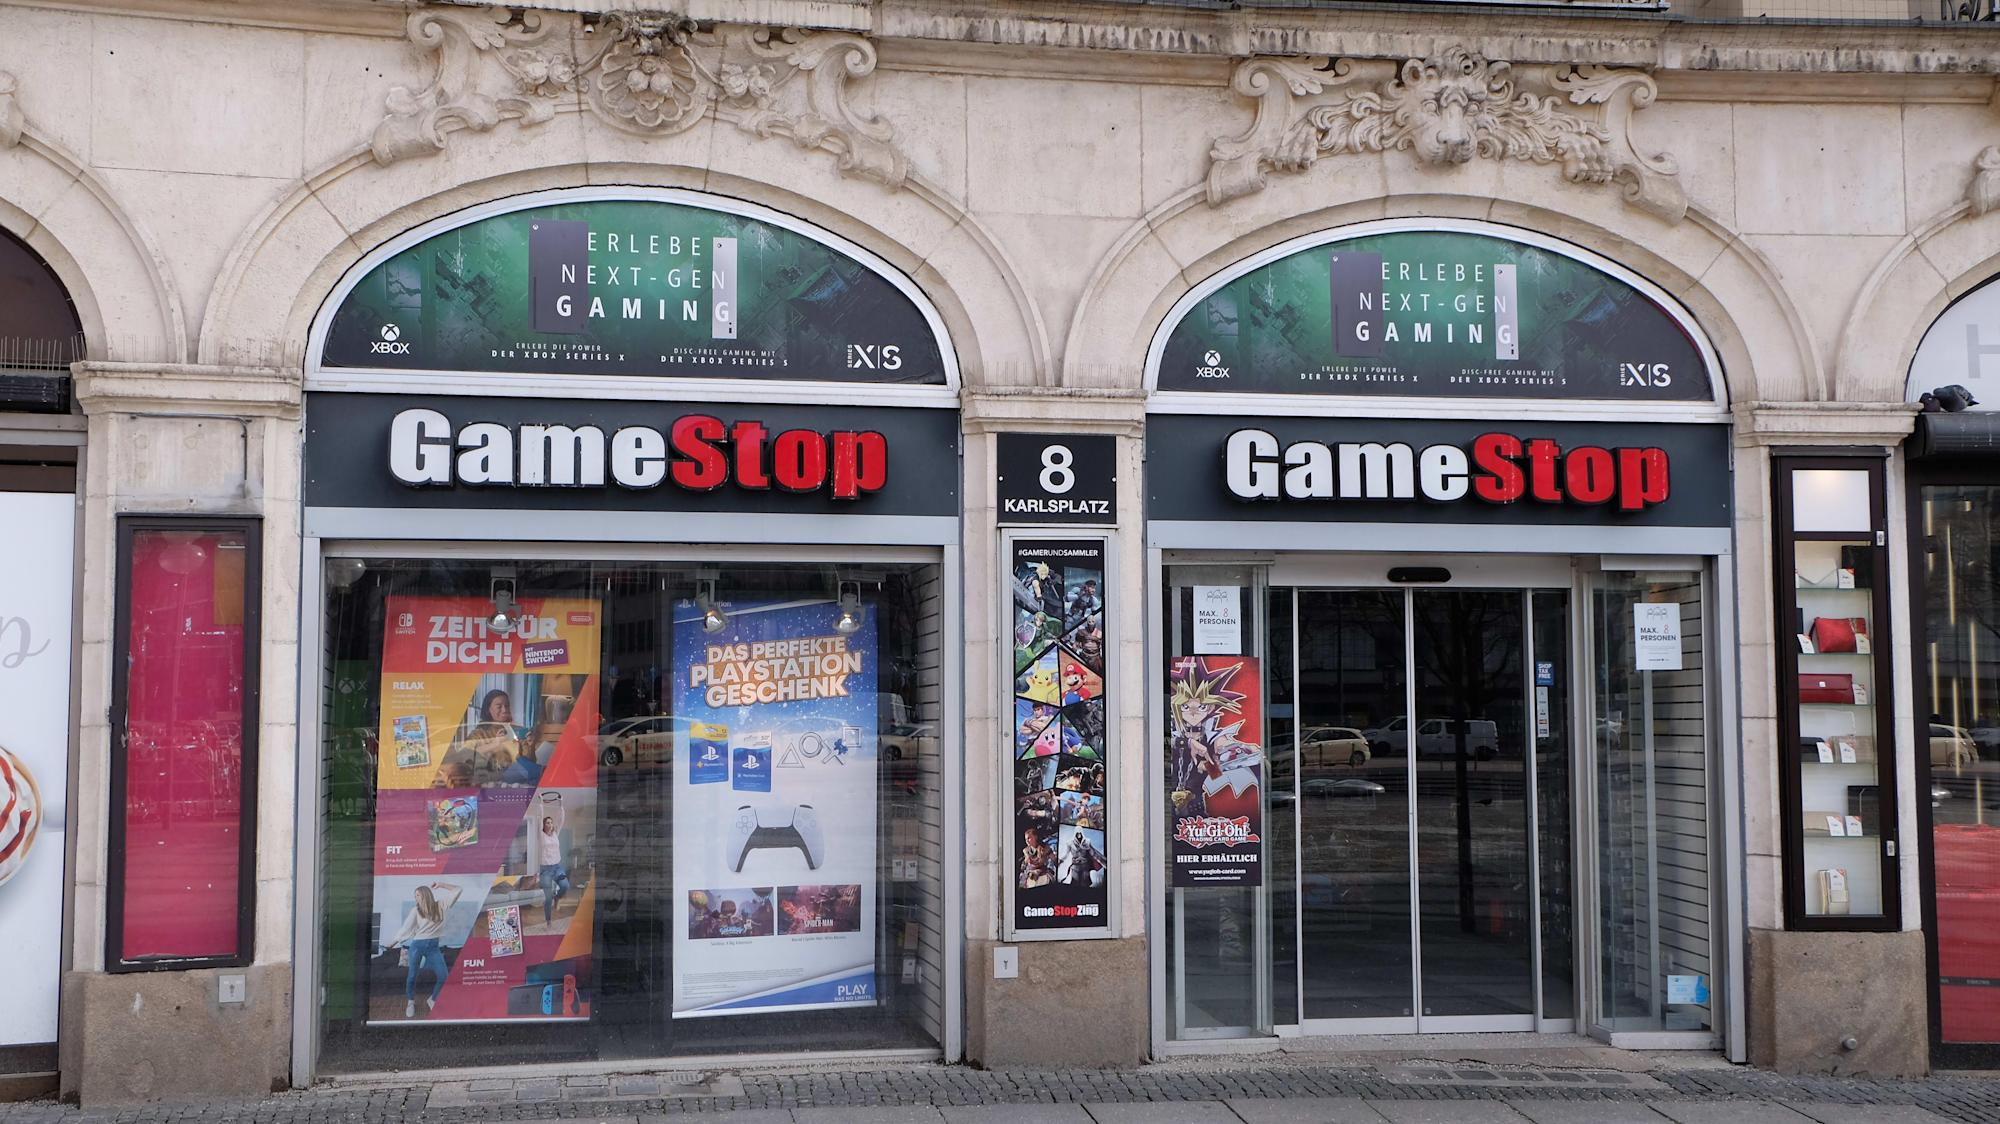 There's 'still a place in the video game ecosystem' for GameStop: strategist thumbnail